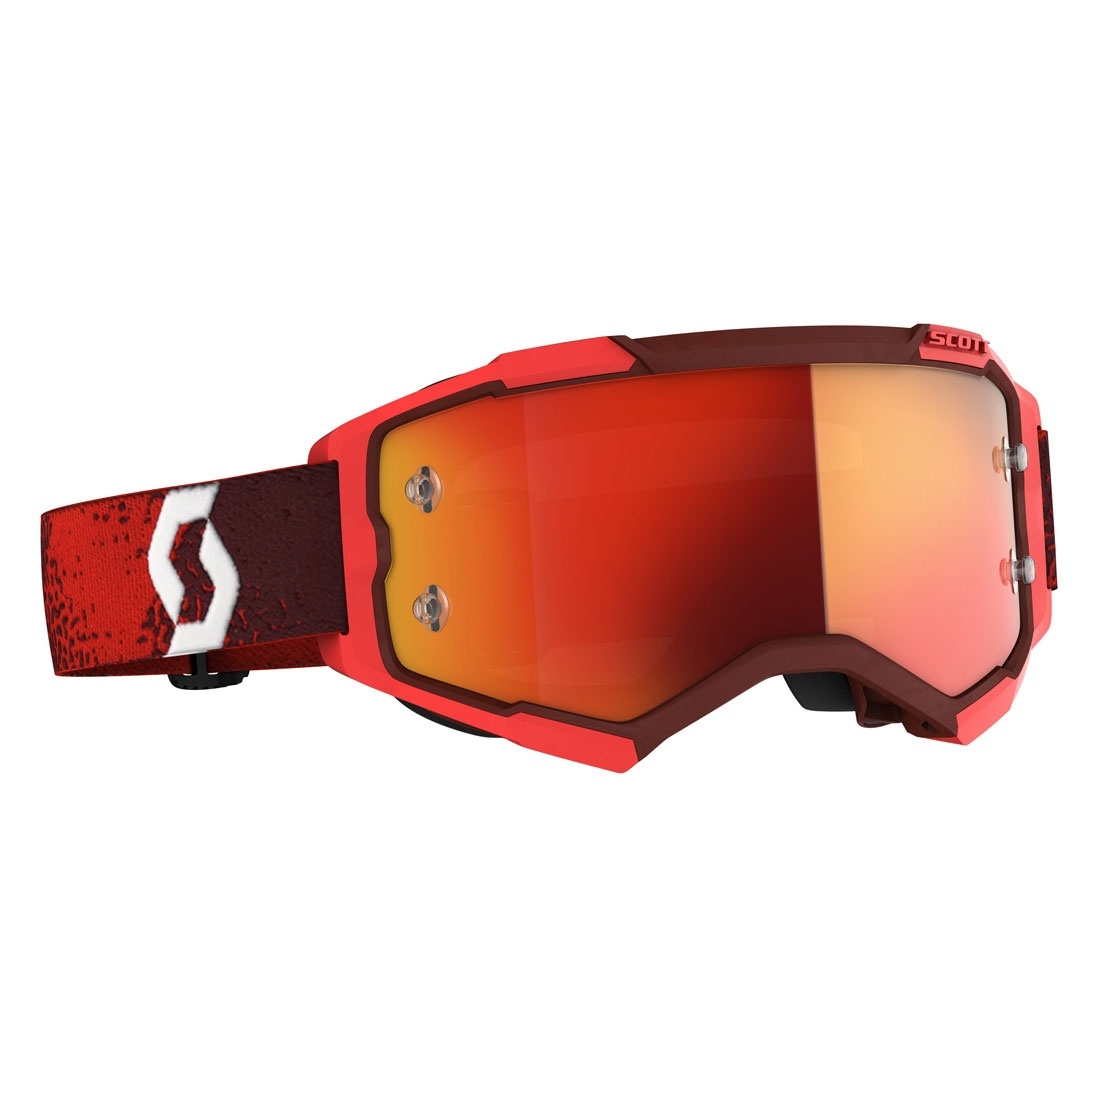 Occhiali (maschera) cross 2020 Scott FURY red lente orange chrome 1